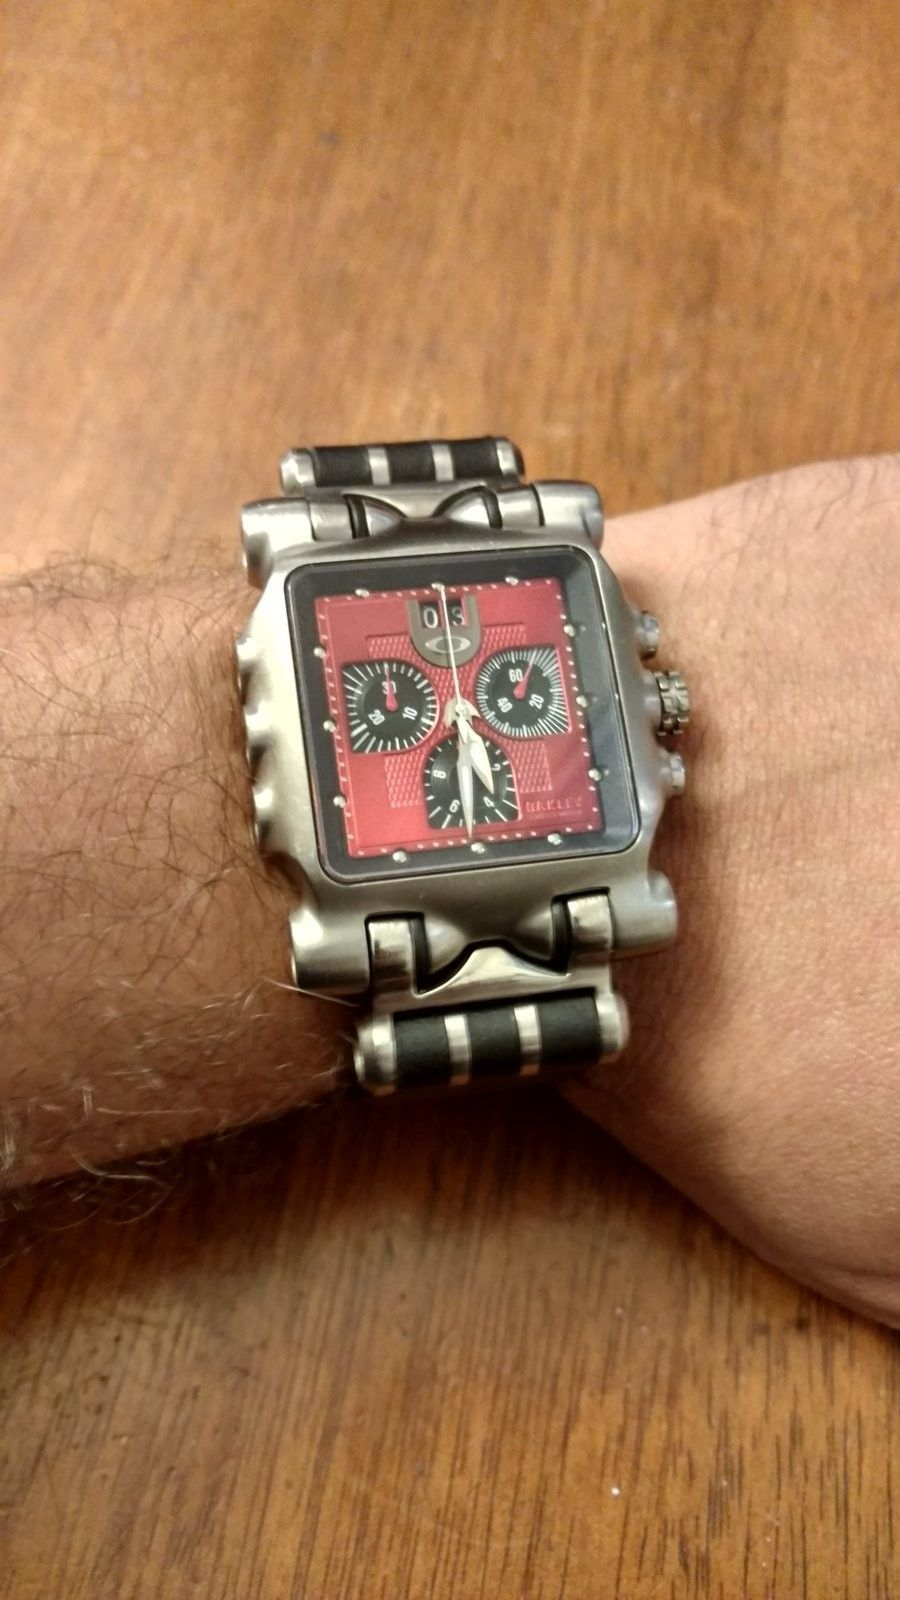 Red Face Minute Machine - Huge Price Drop with options - IMG_20160815_173113740_HDR.jpg